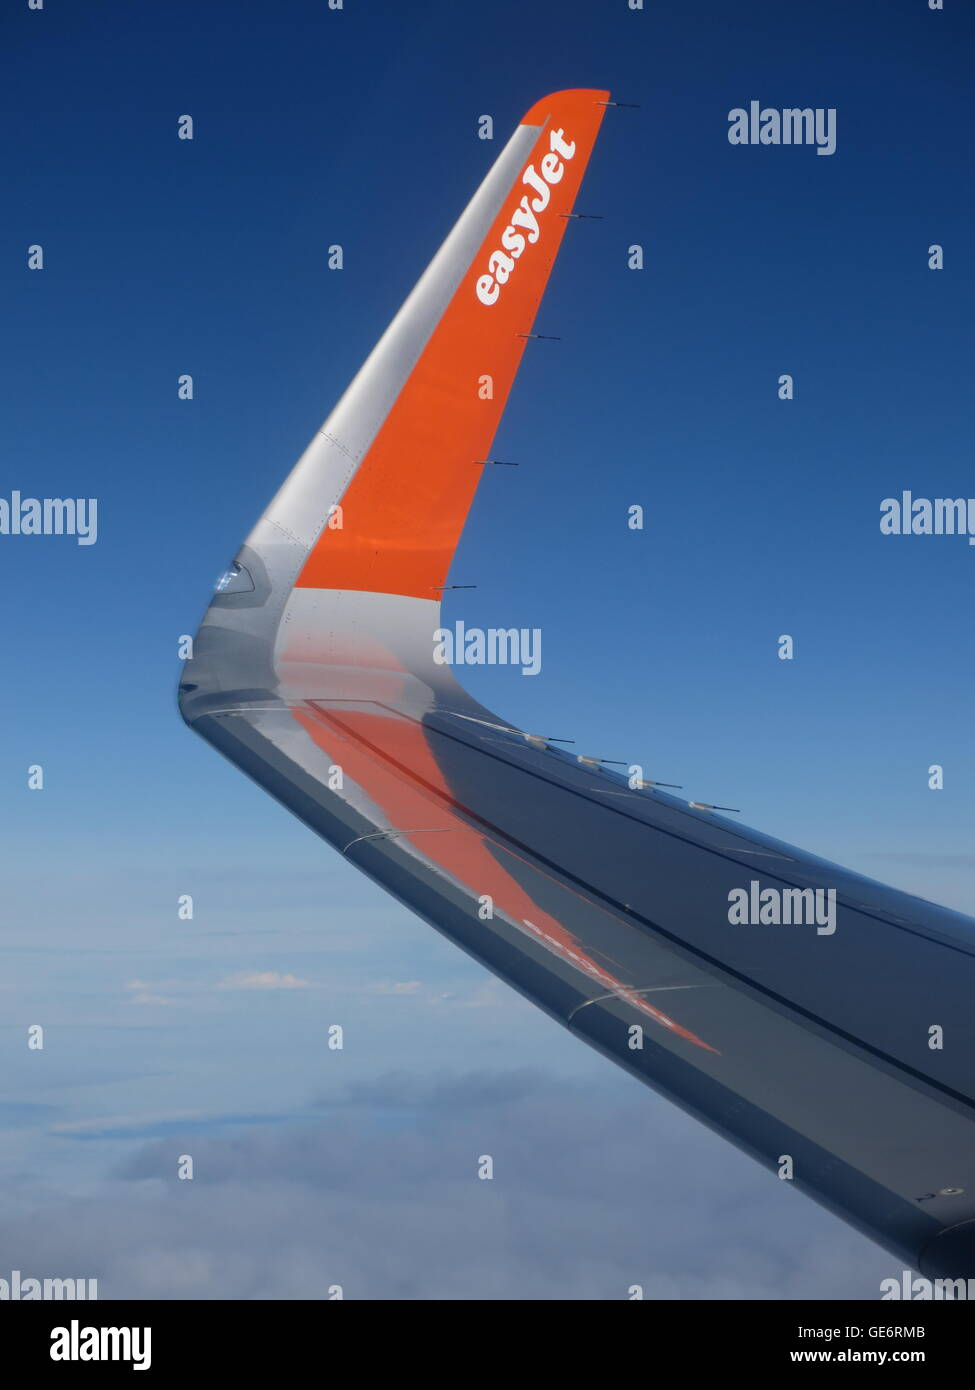 Easyjet logo on the winglet of an Easyjet Airbus A320 family aircraft - Stock Image